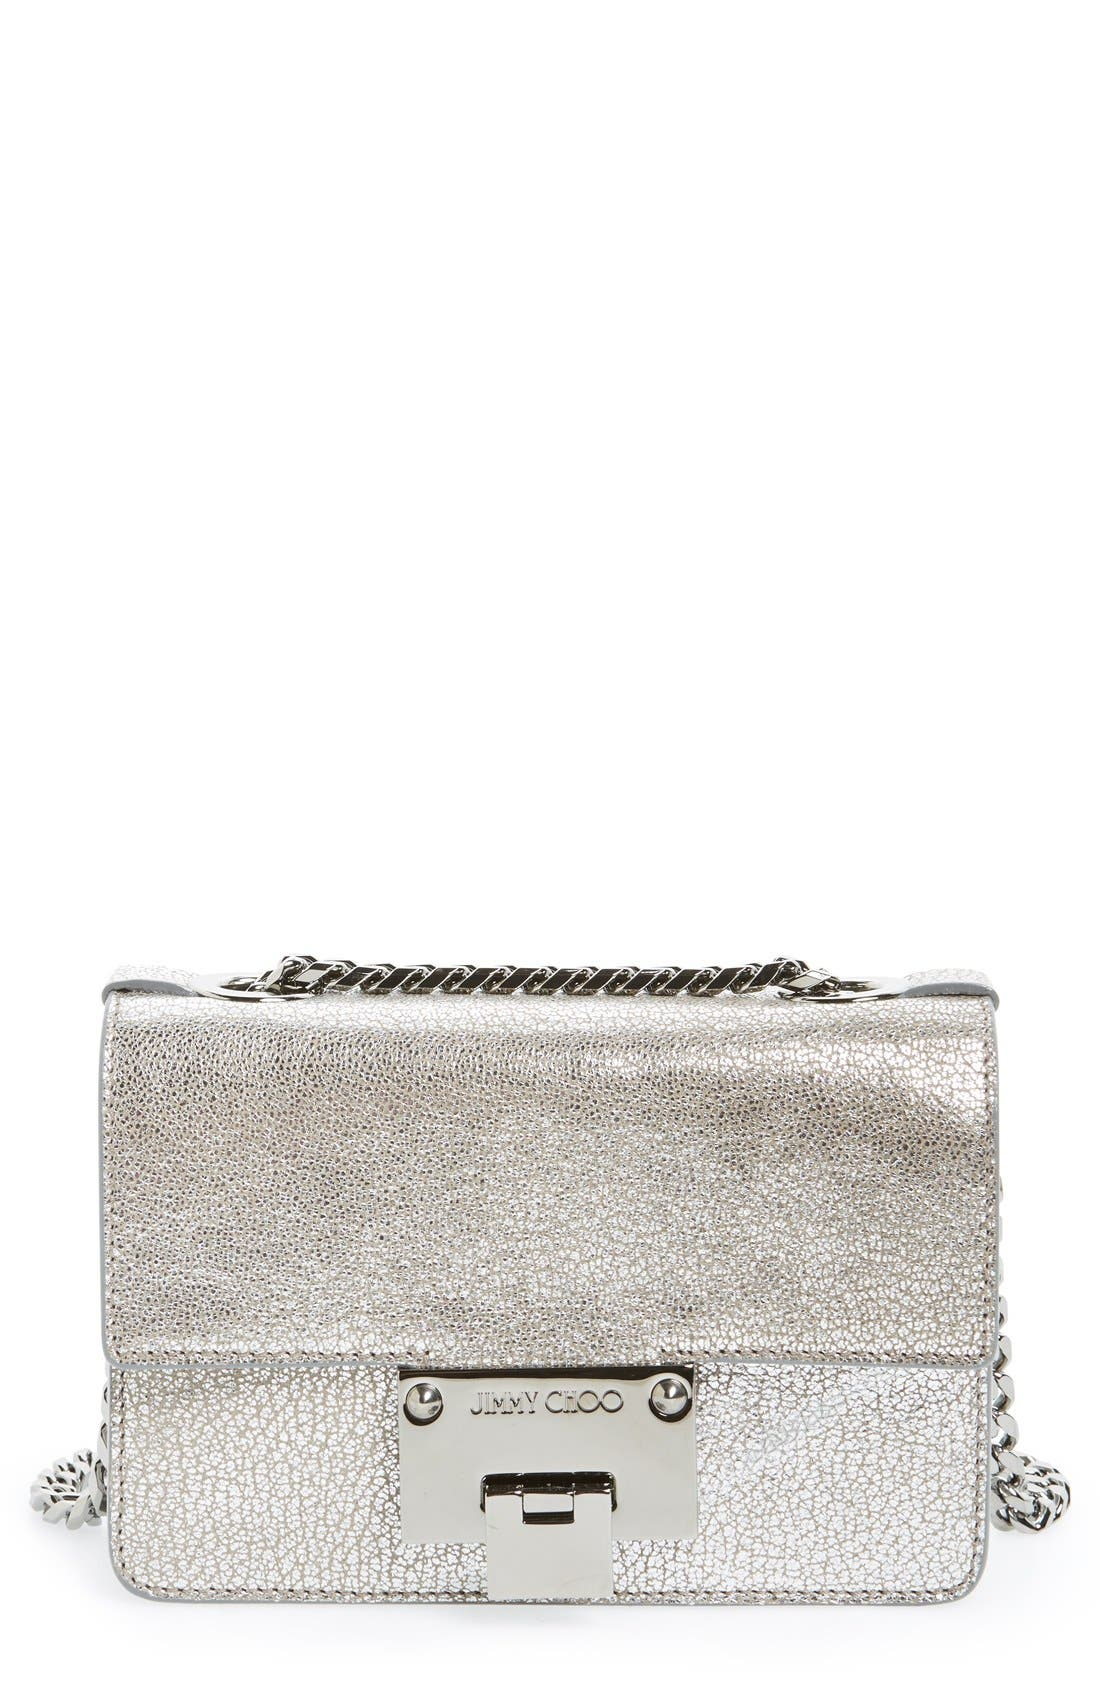 JIMMY CHOO 'Rebel Mini' Metallic Leather Crossbody Bag